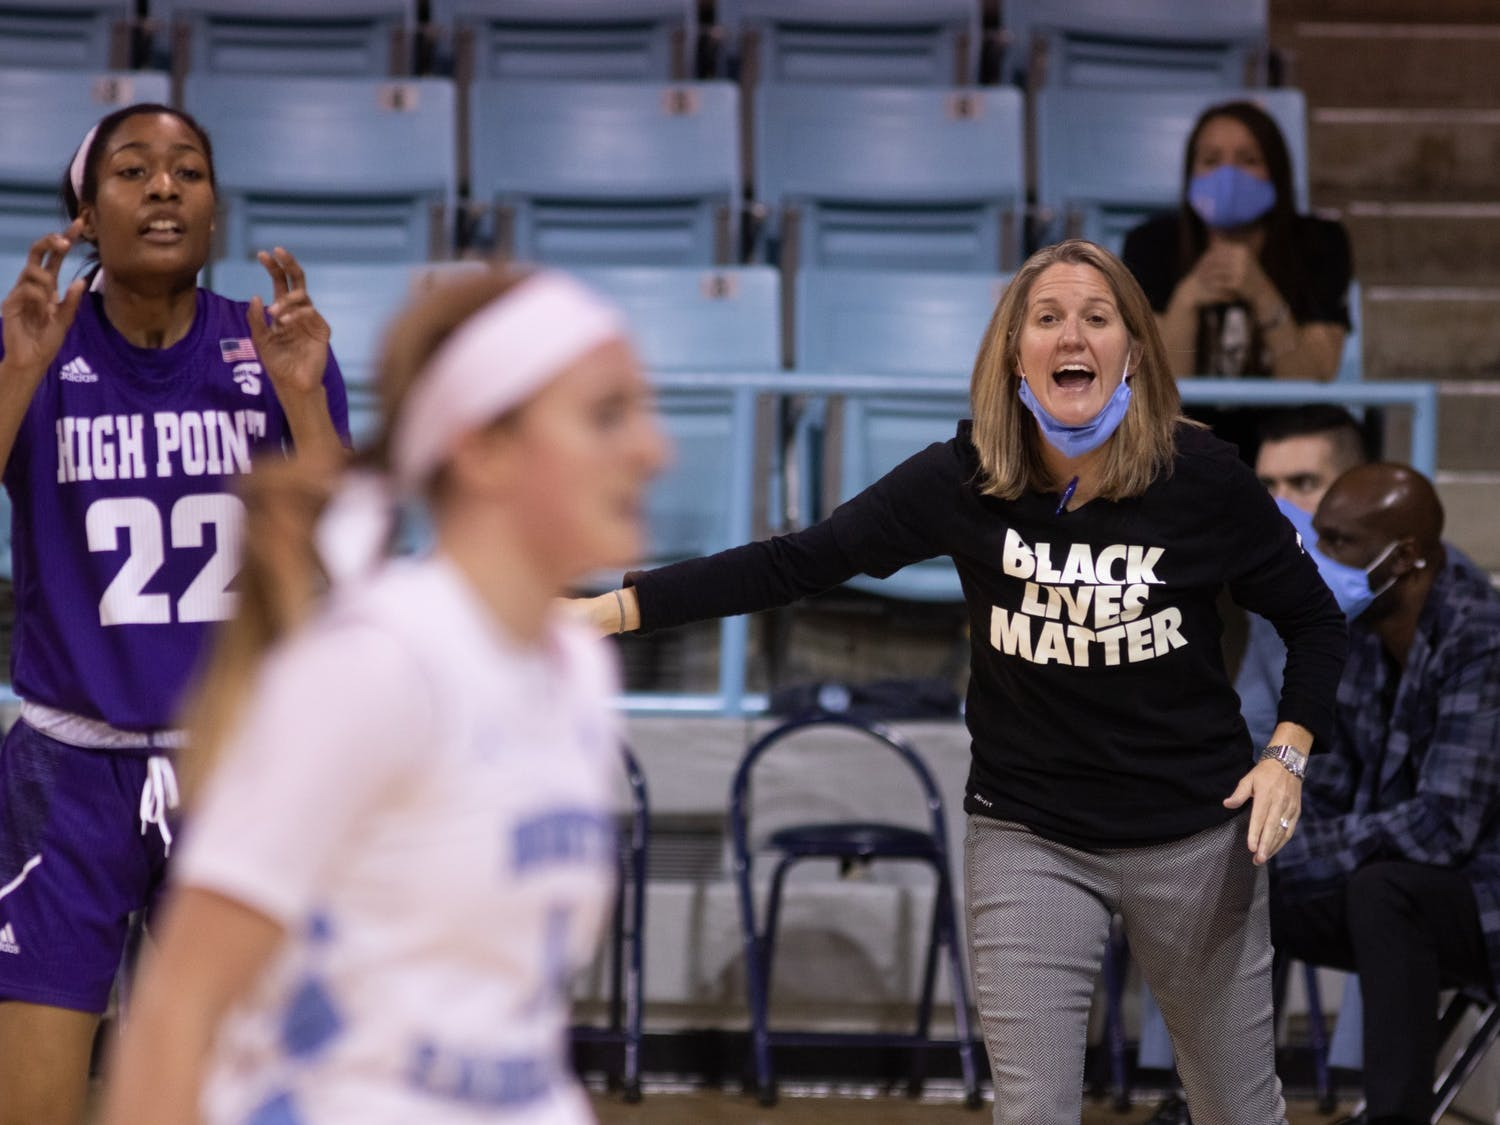 UNC women's basketball coach Courtney Banghart cheers on her team during a game against High Point in Carmichael Arena on Sunday, Nov. 29, 2020. UNC beat High Point 95-70.